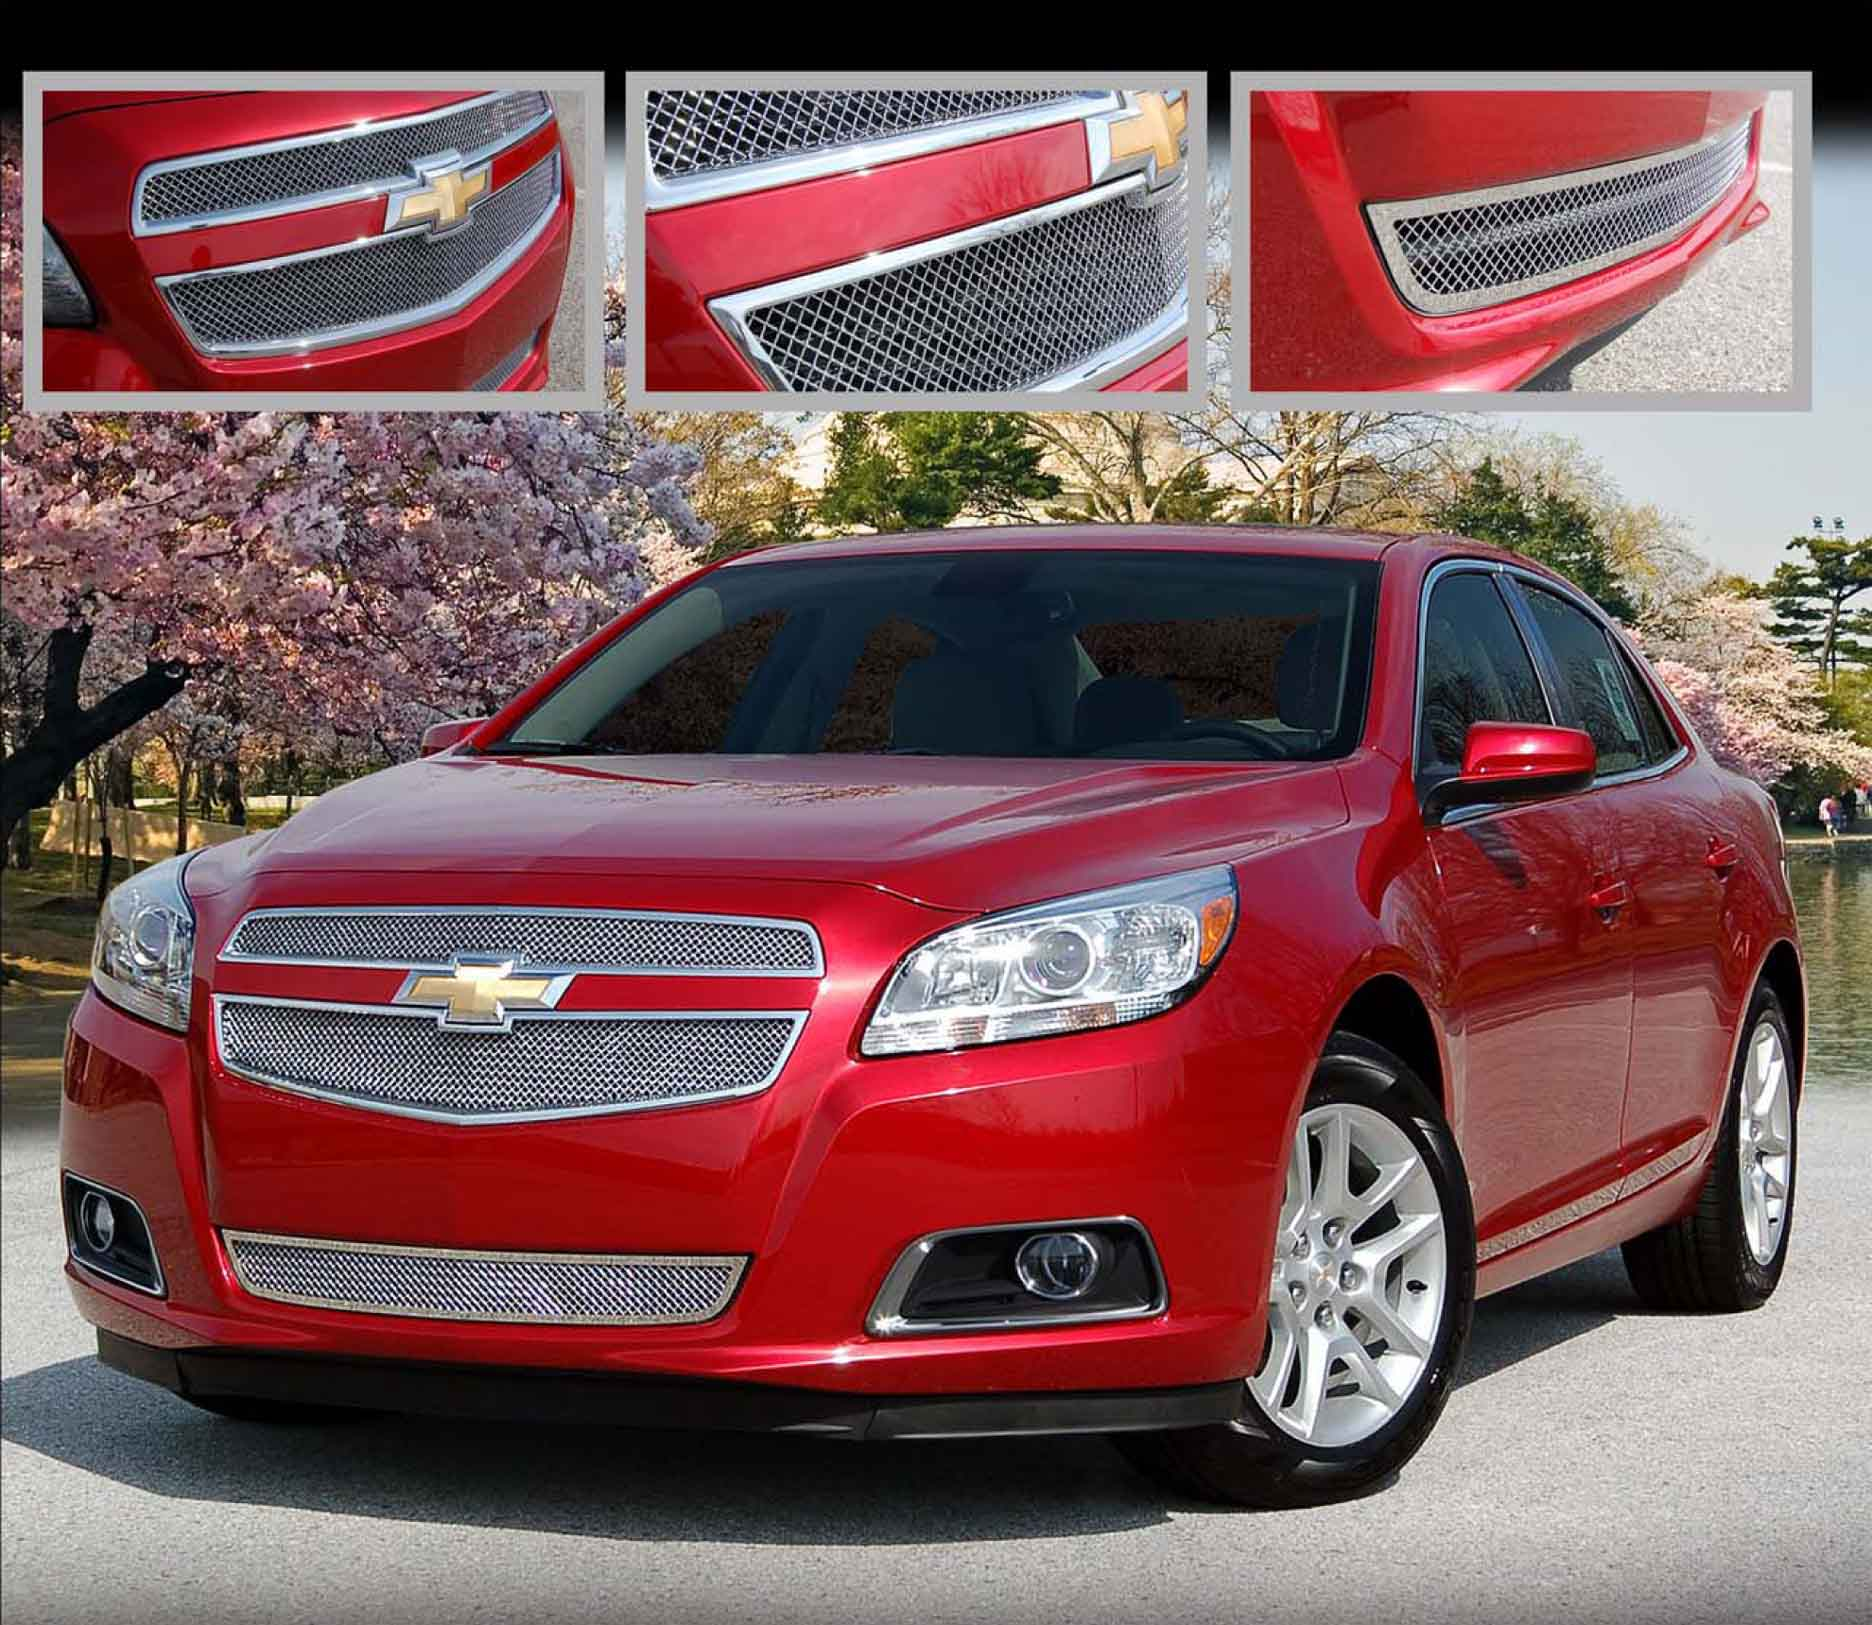 Chevrolet Malibu 2014 For Sale: E&G Classics Chevrolet Malibu